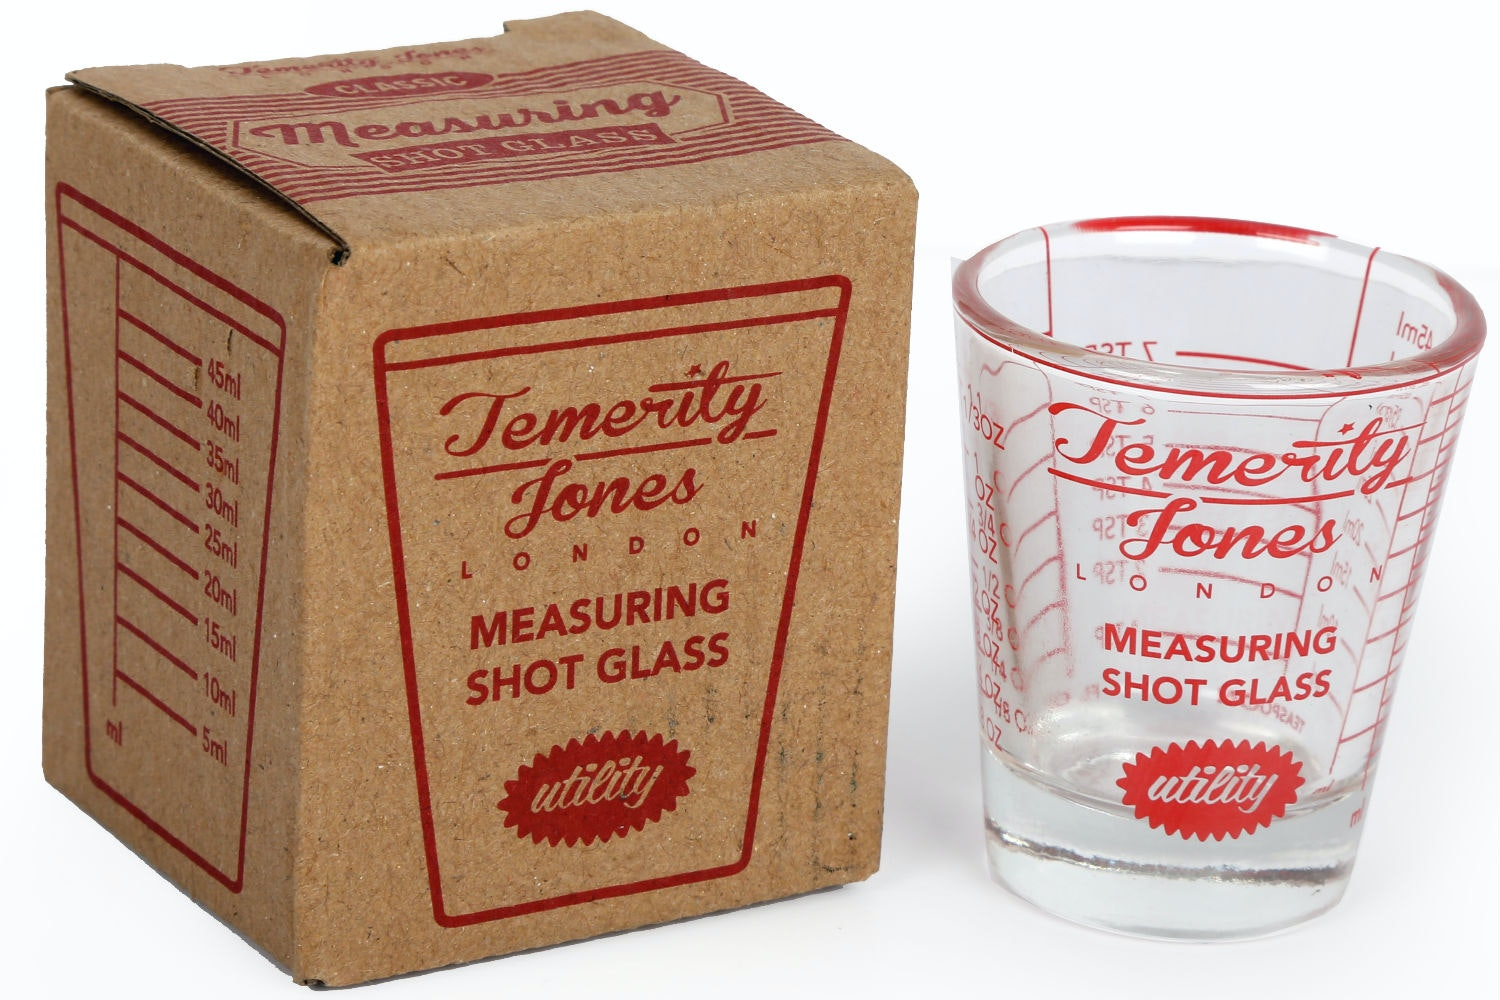 Utility Measuring Shot Glass